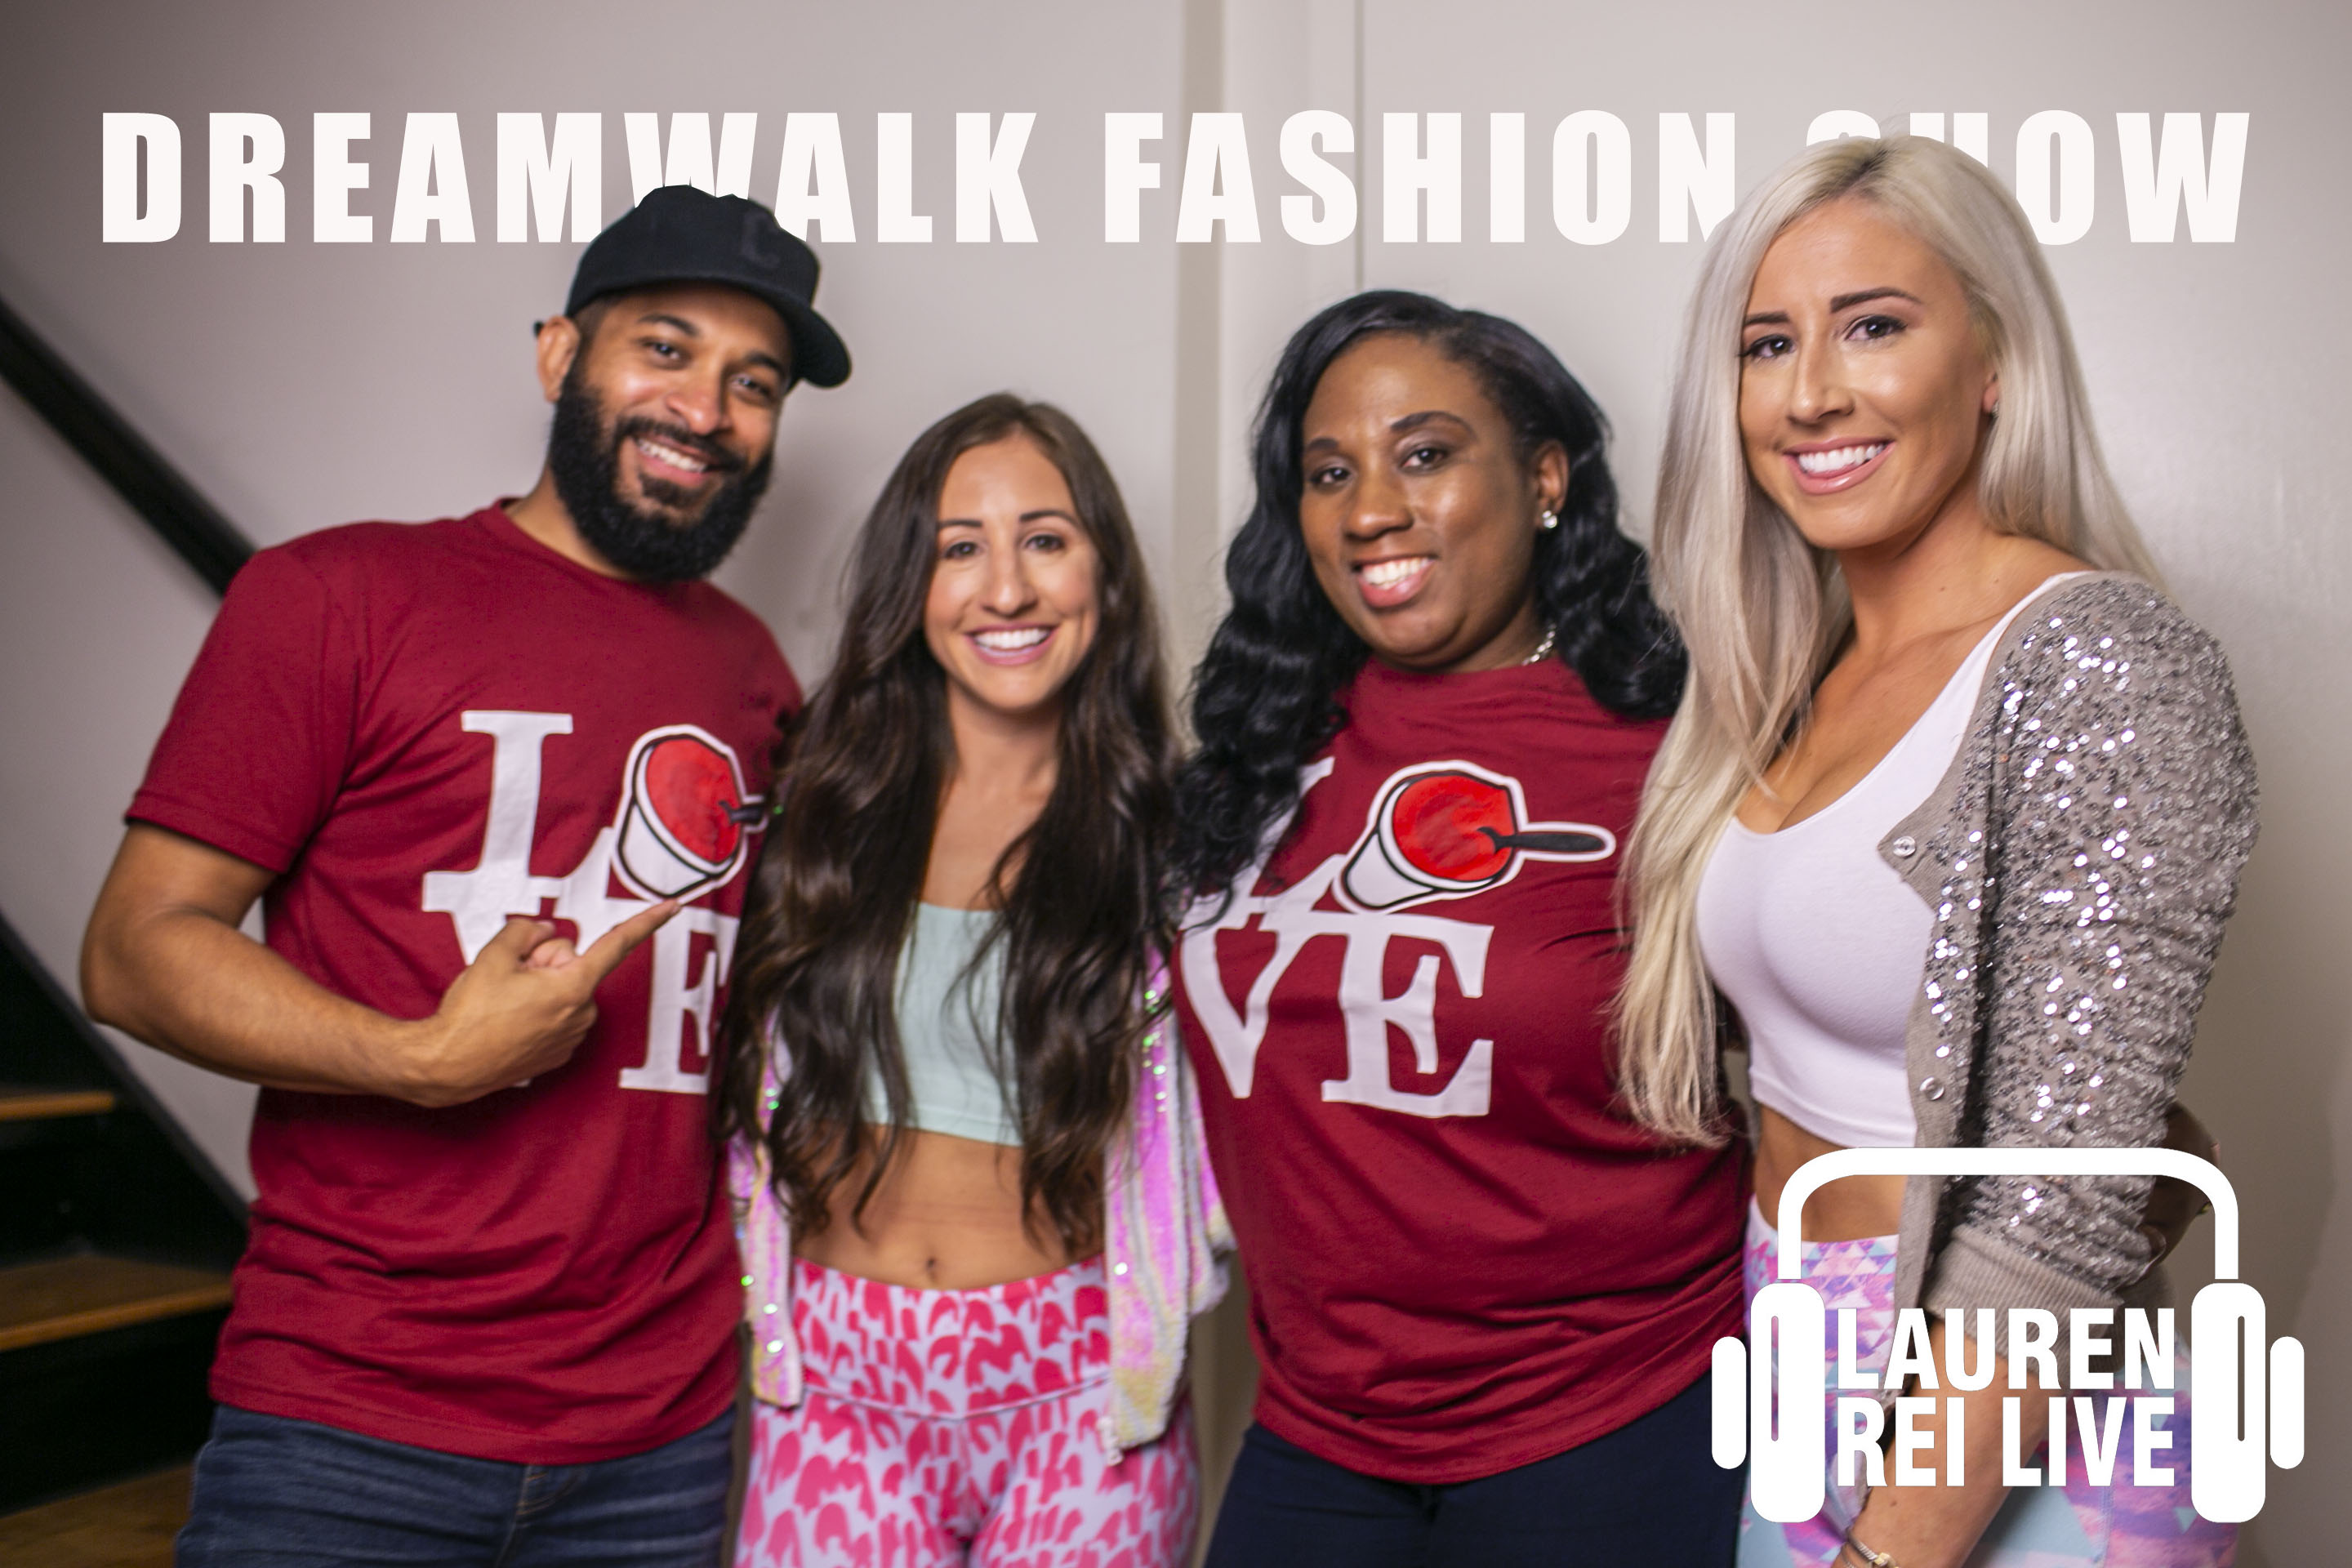 Dreamwalk Fashion Show Interview